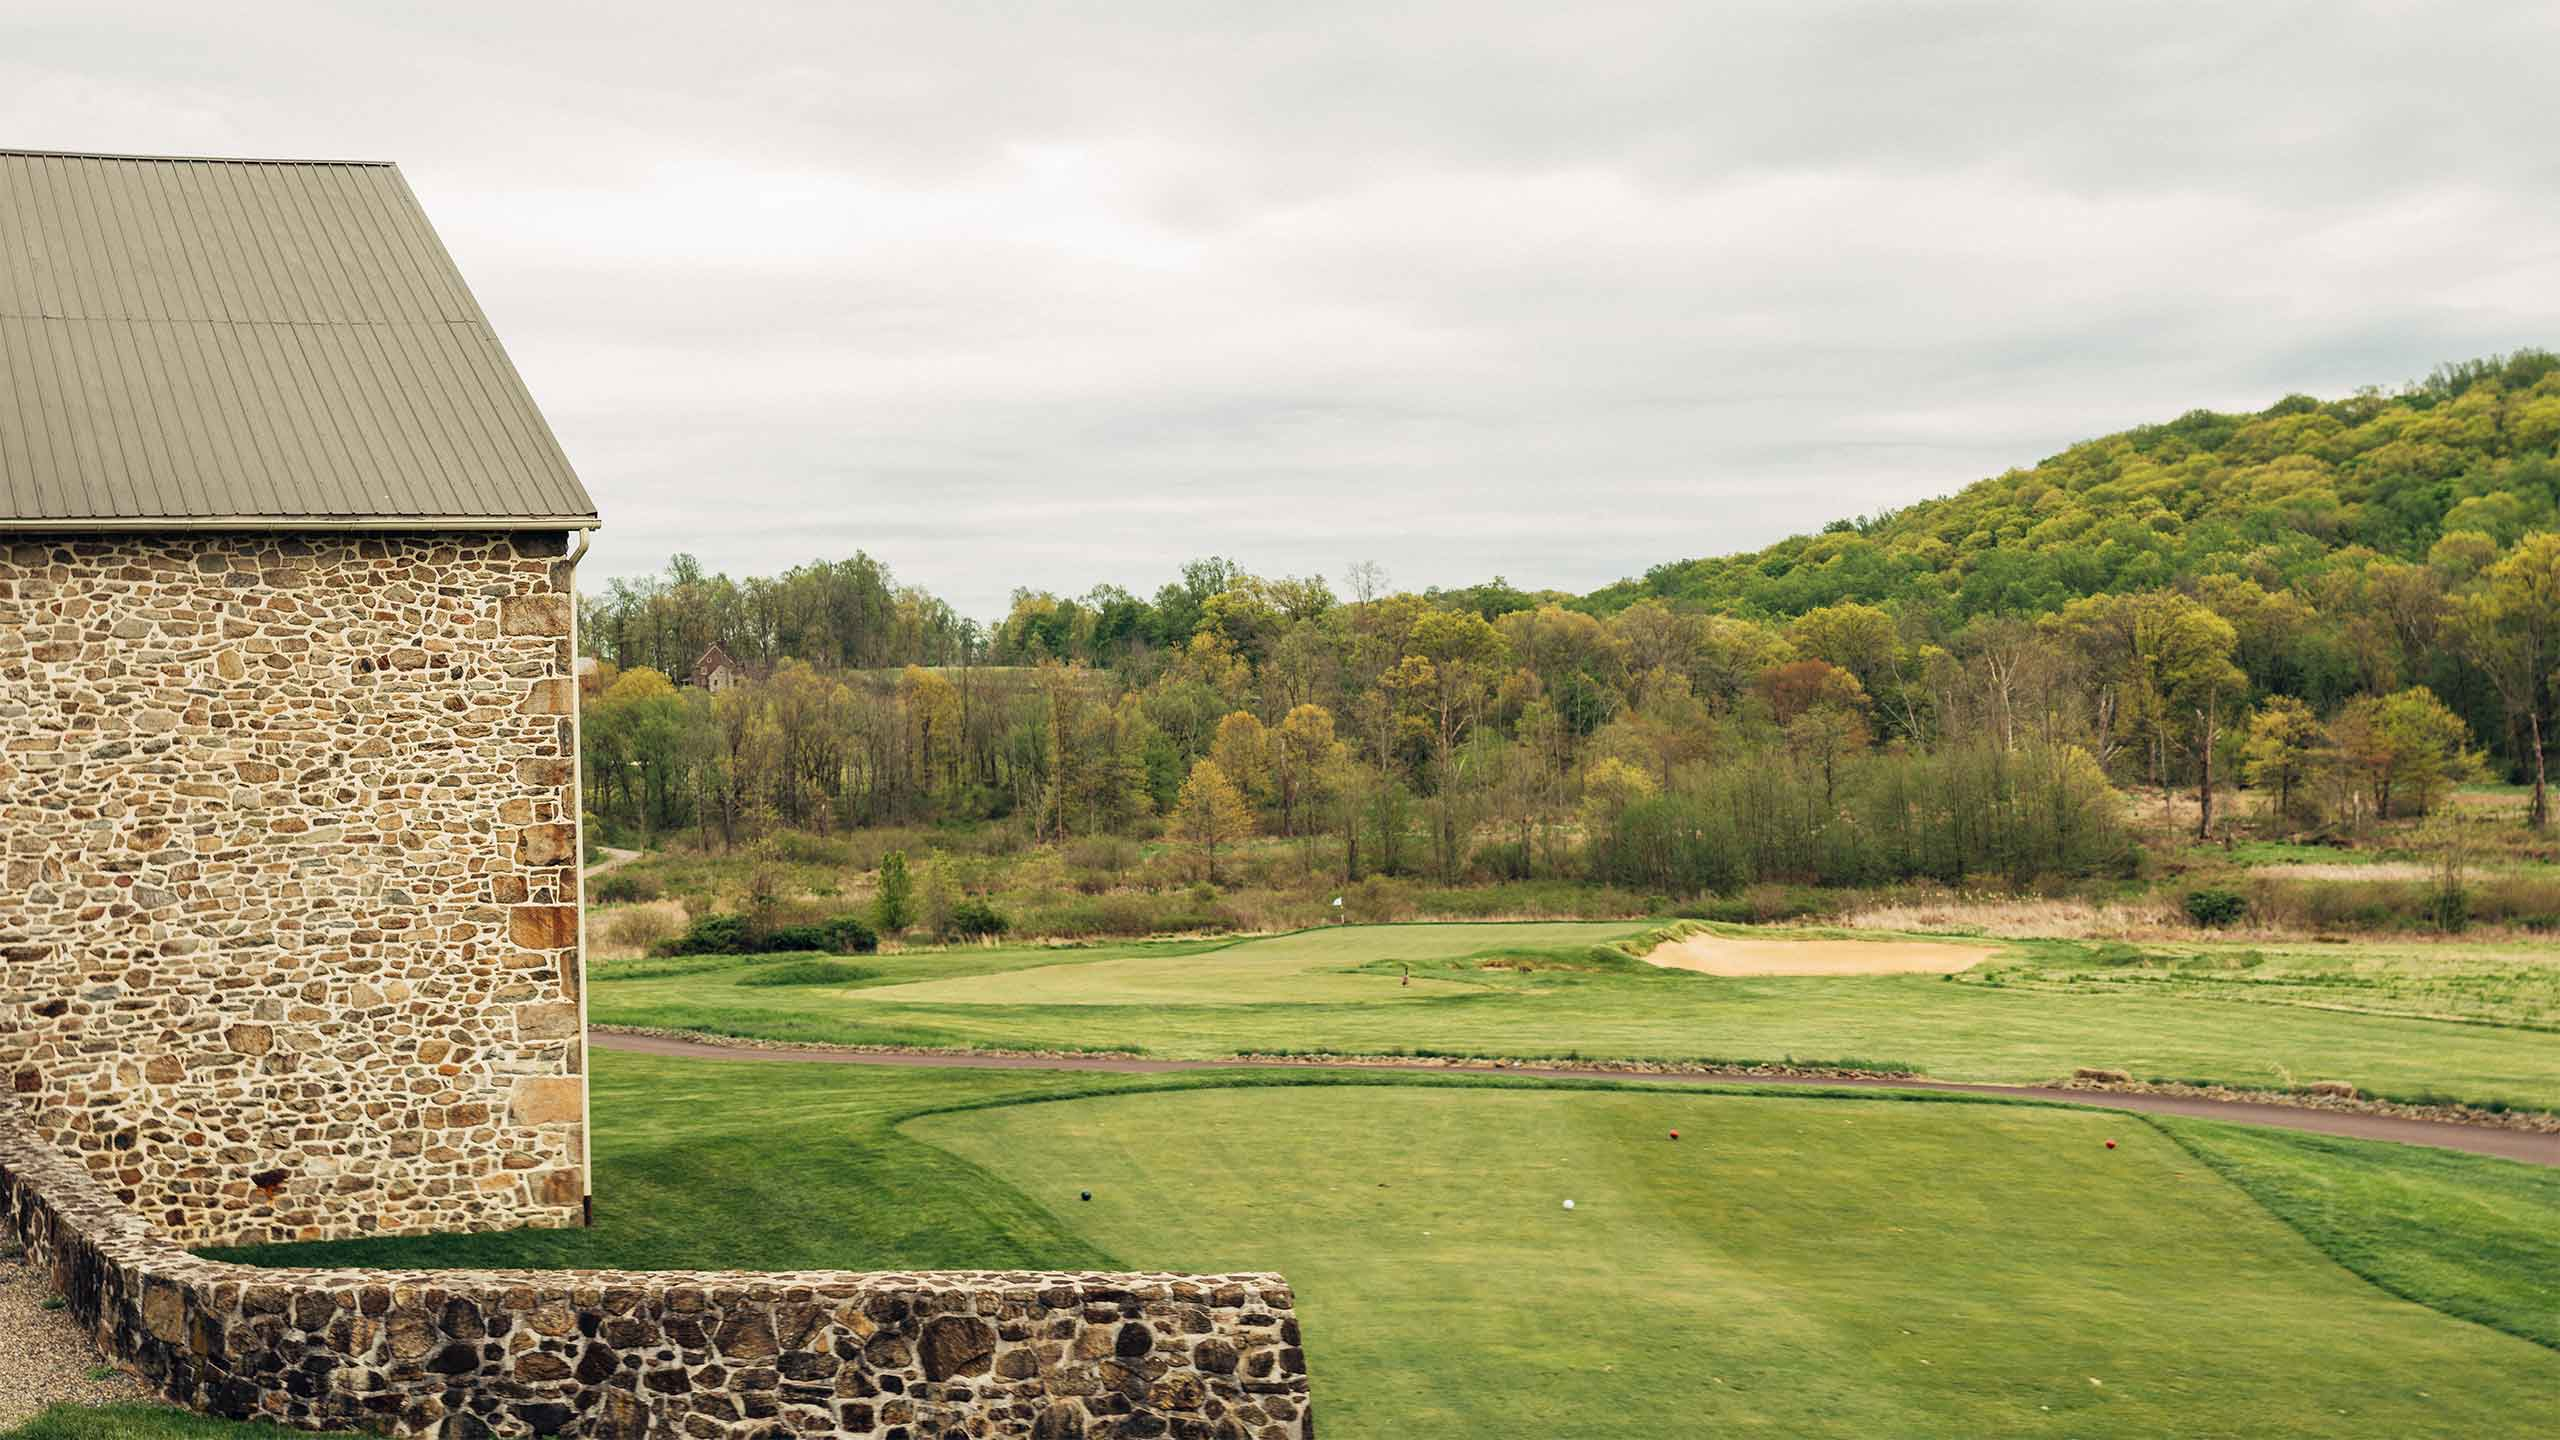 French Creek Golf Club in Elverson, Pa.